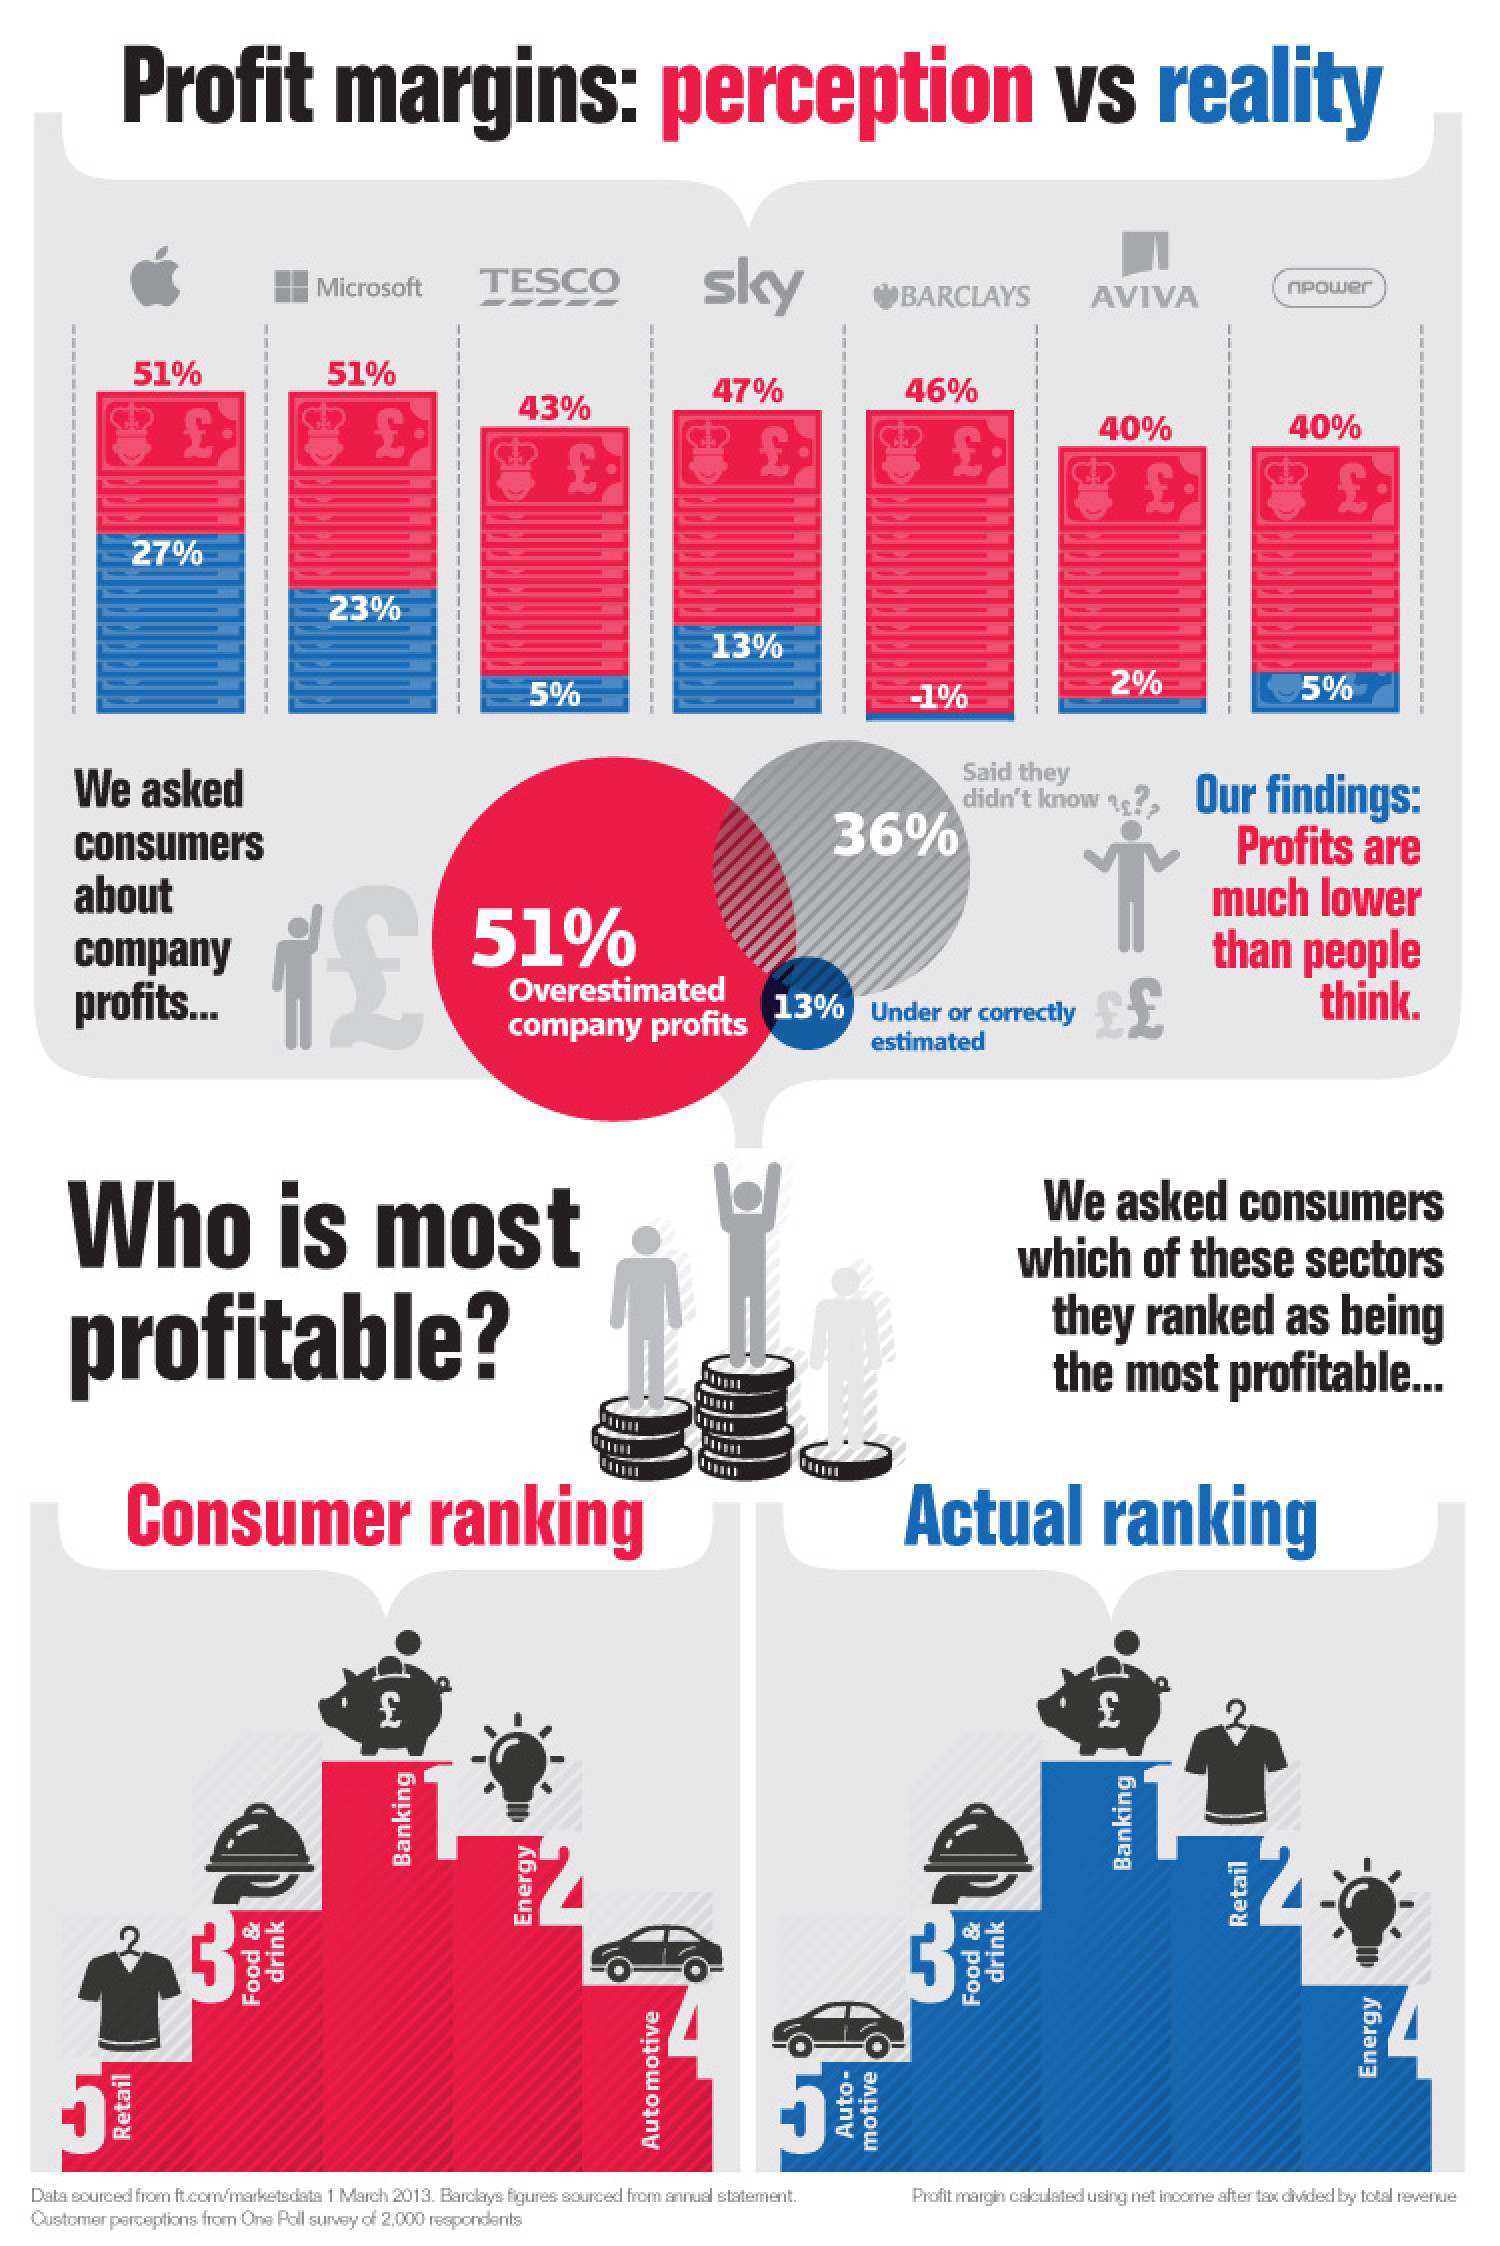 Energy profits: perception vs reality Infographic